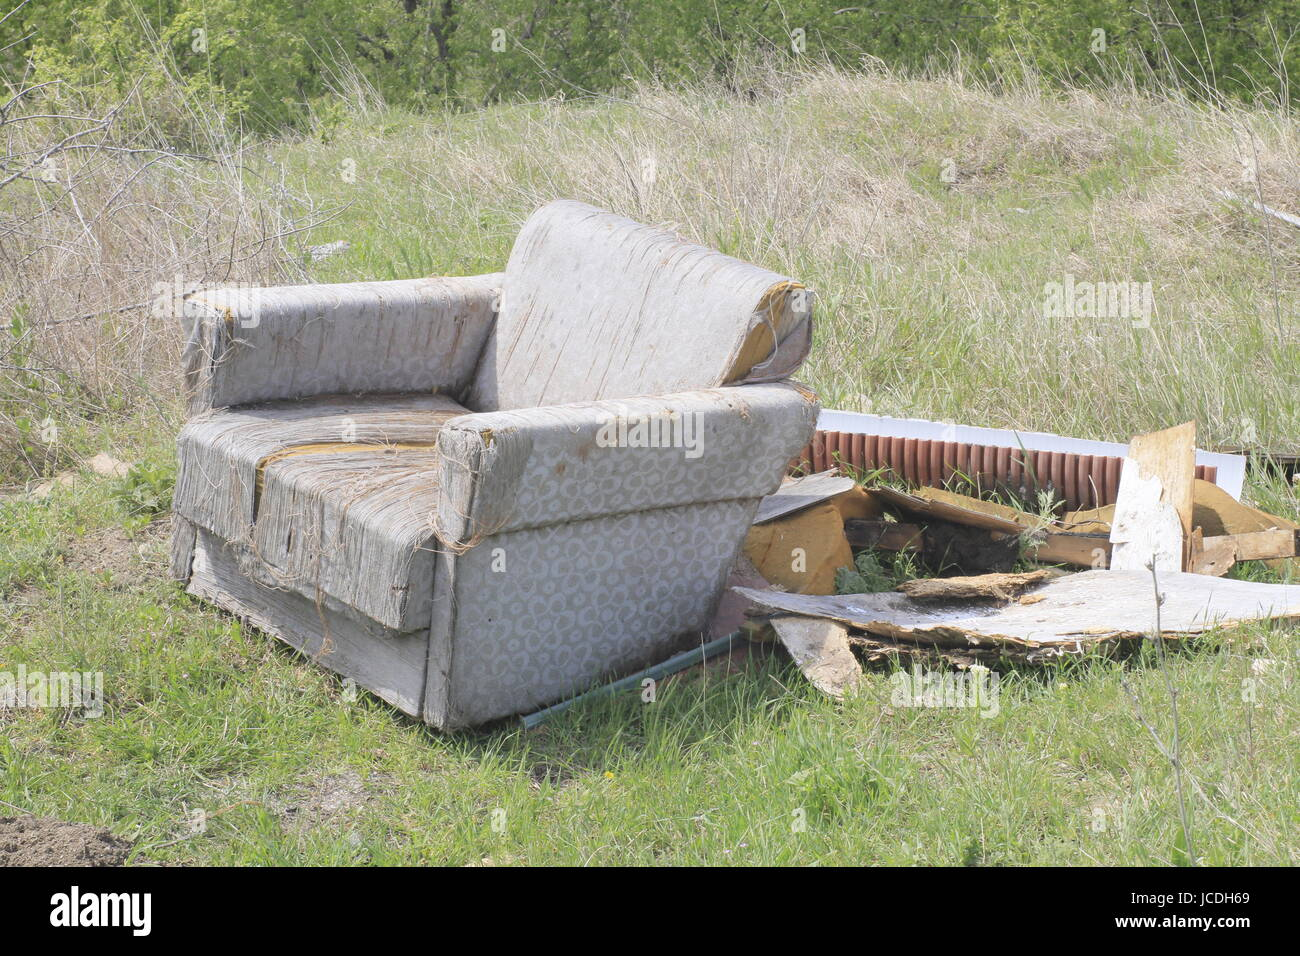 A picture or image showing an old seat or chair dumped rubbish in a field with other rubbish. - Stock Image